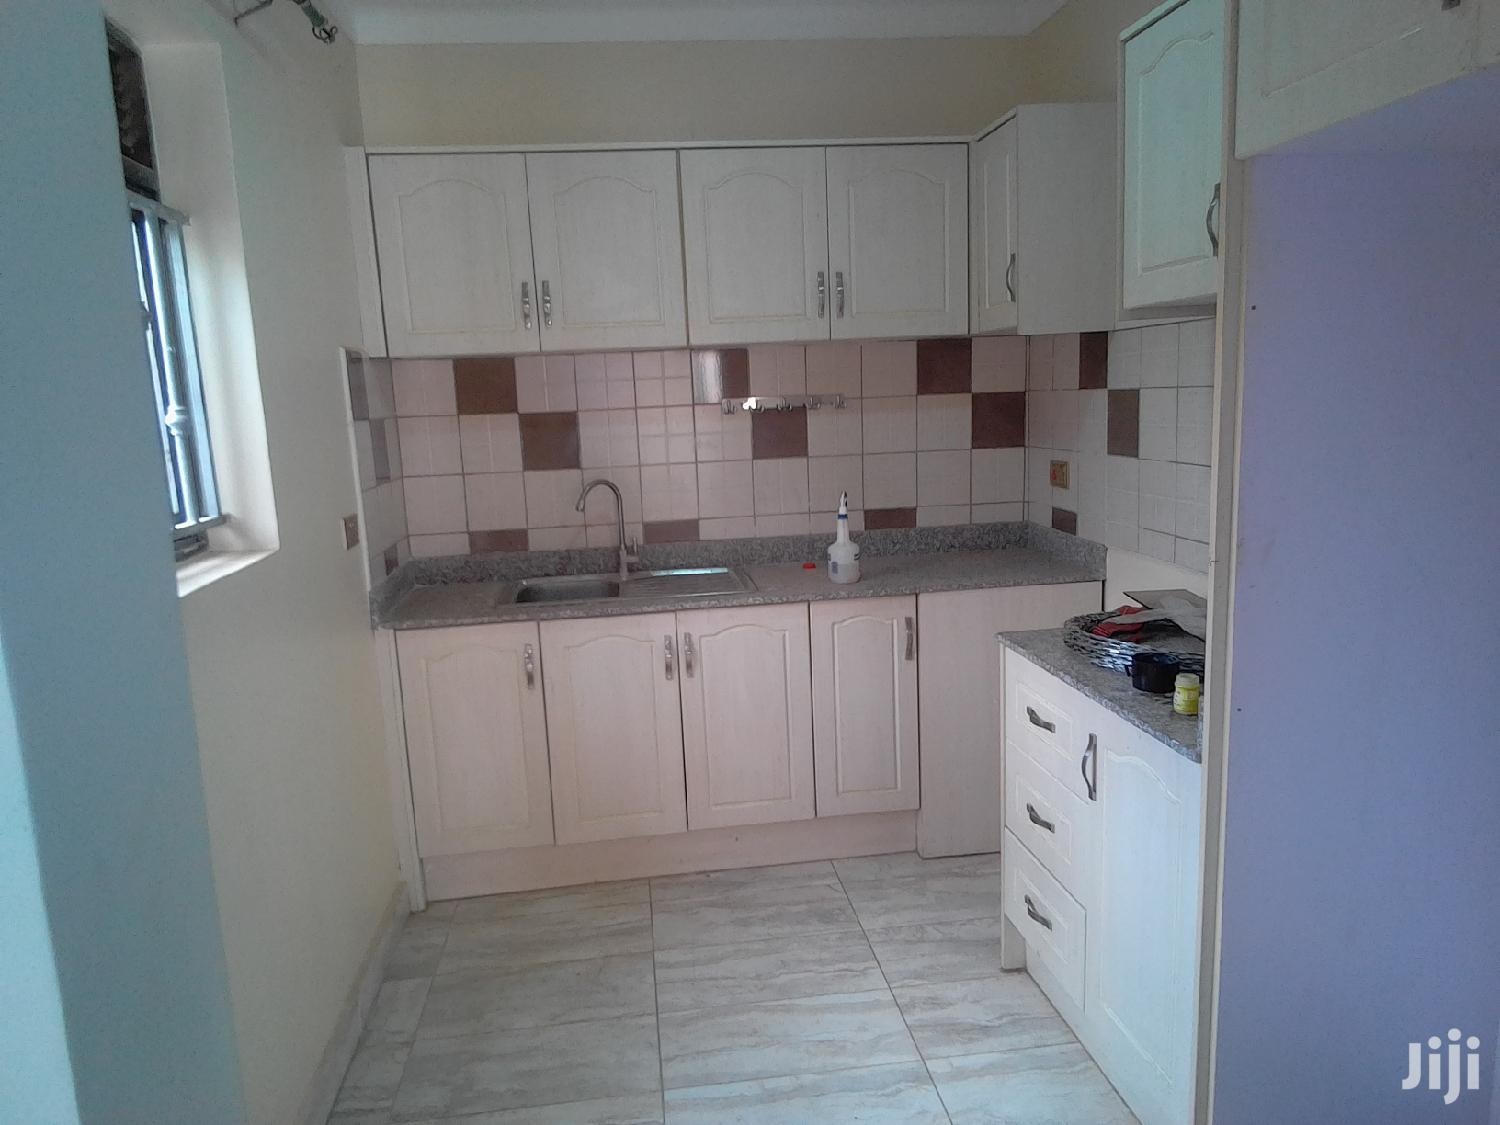 Spacious Apartment For Rent In Bukoto | Houses & Apartments For Rent for sale in Kampala, Central Region, Uganda